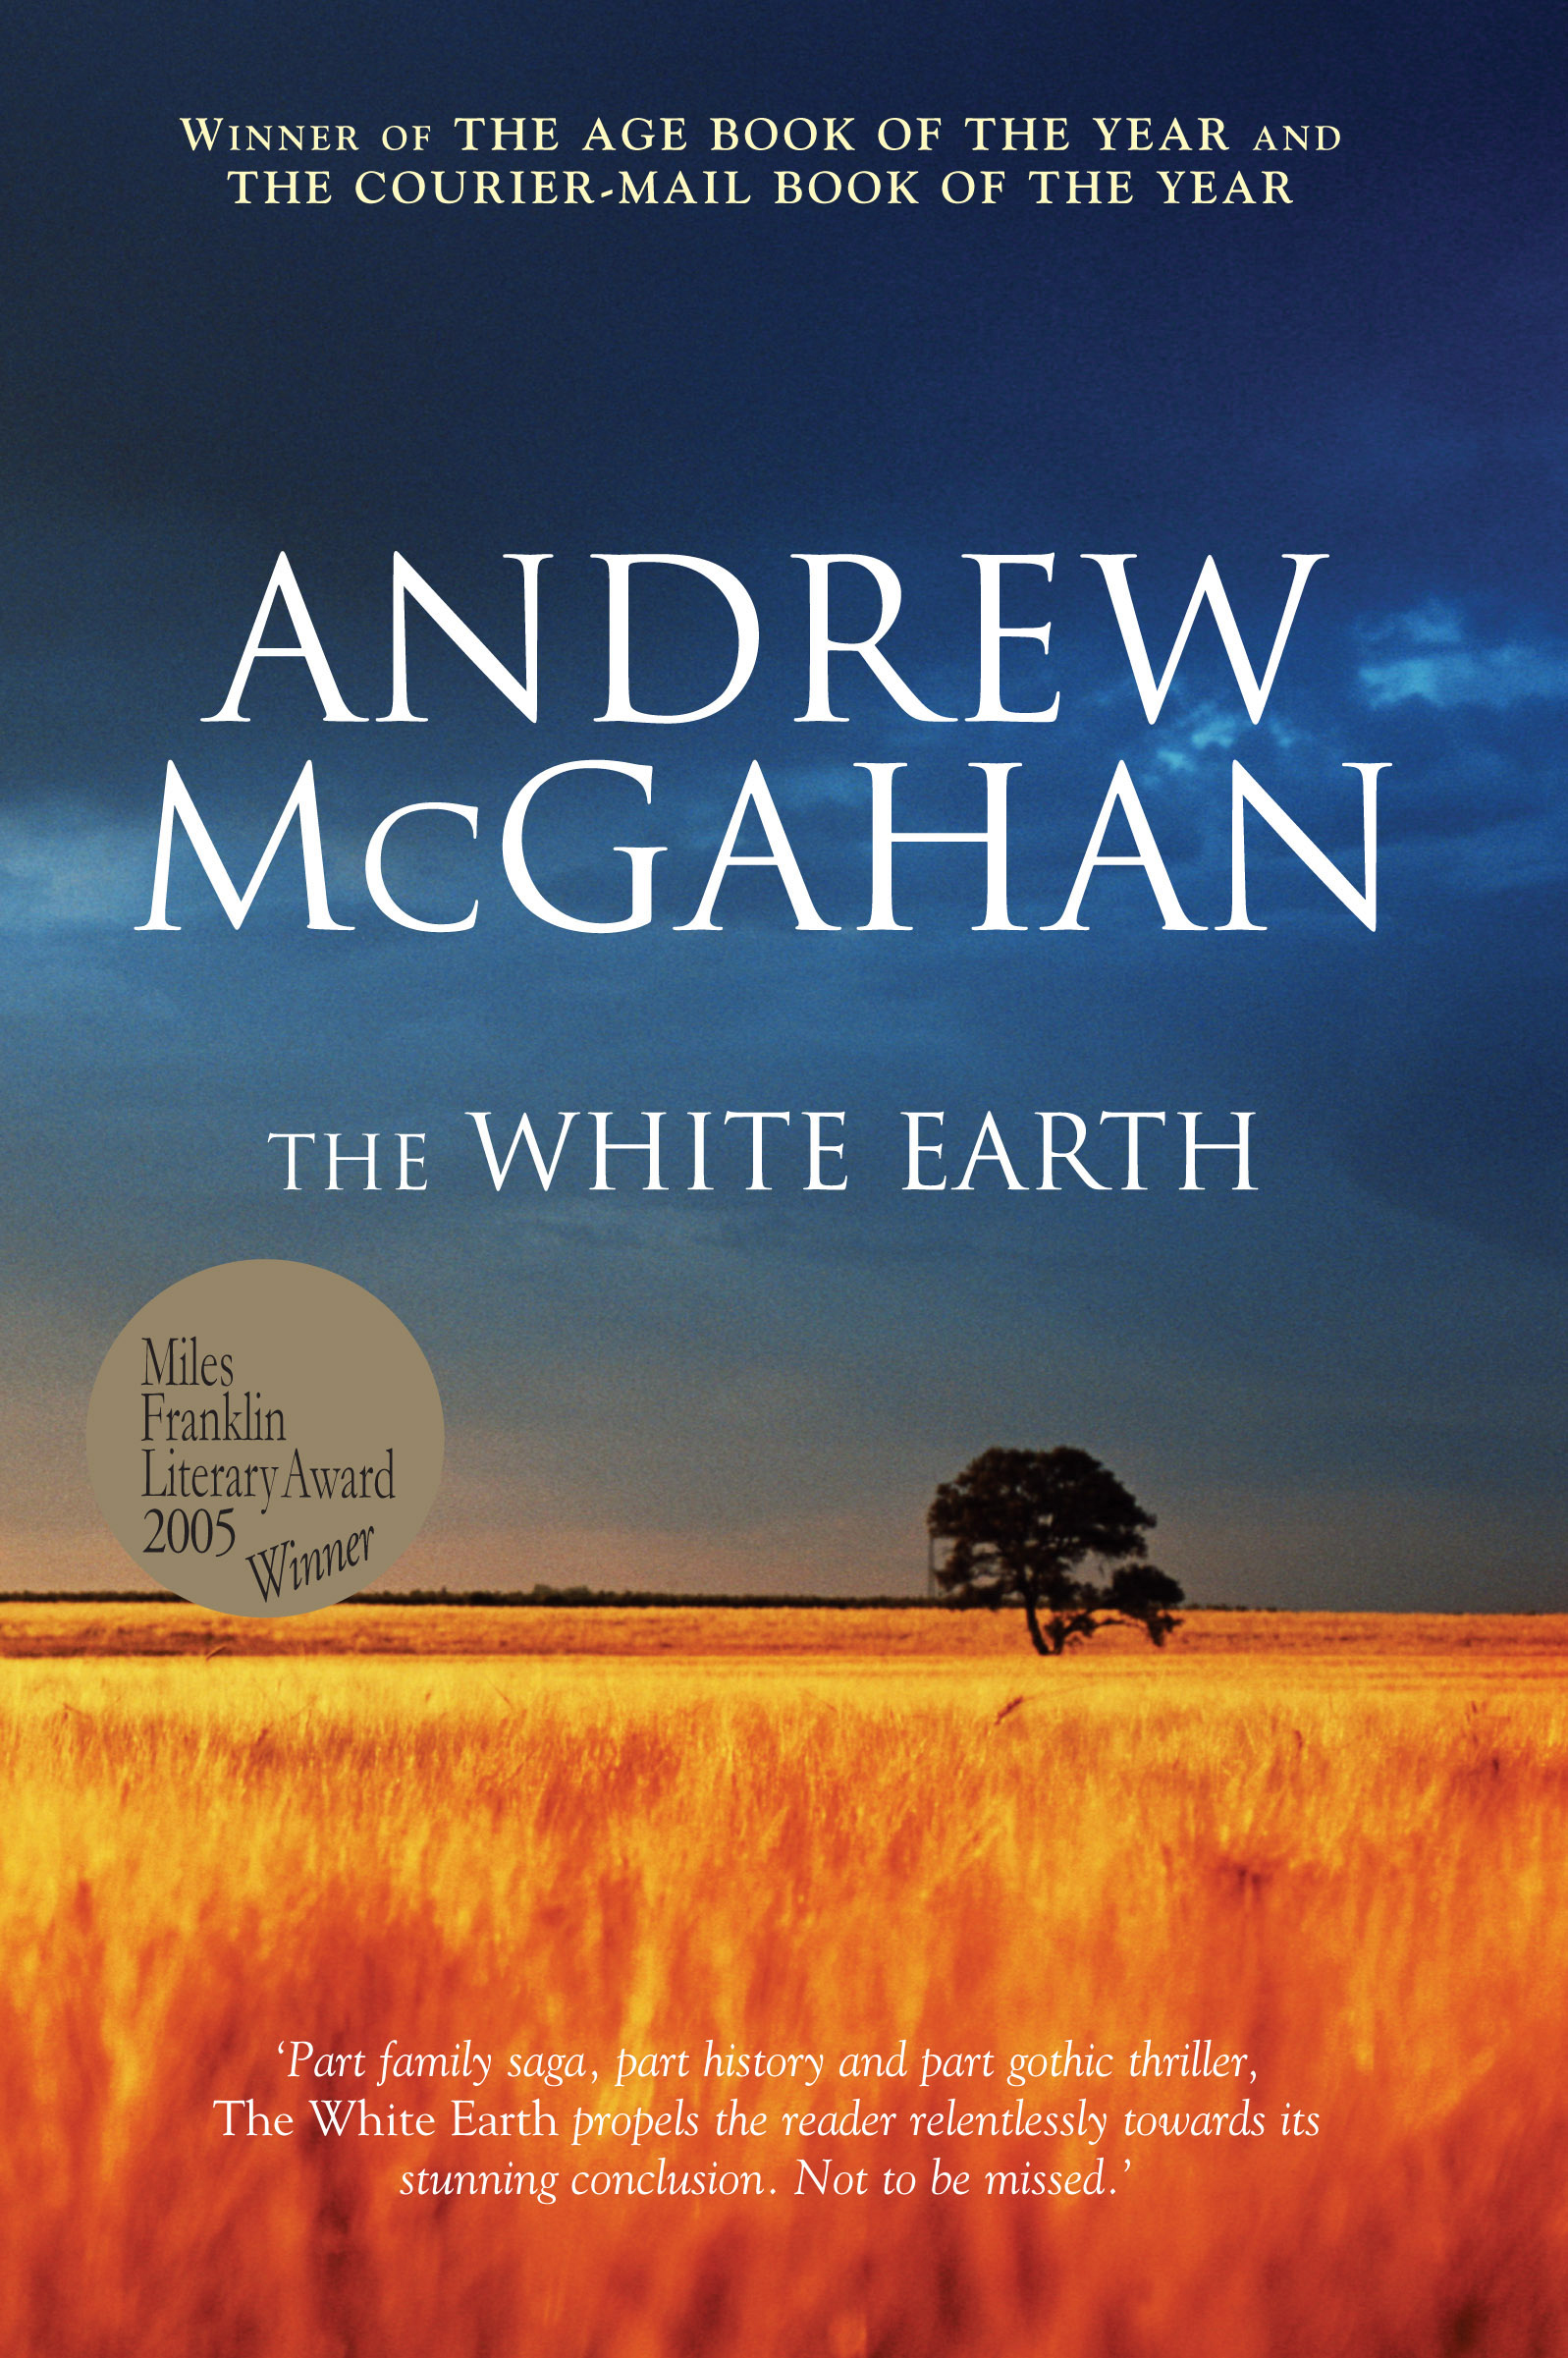 the white earth - andrew mcgahan - 9781741146127